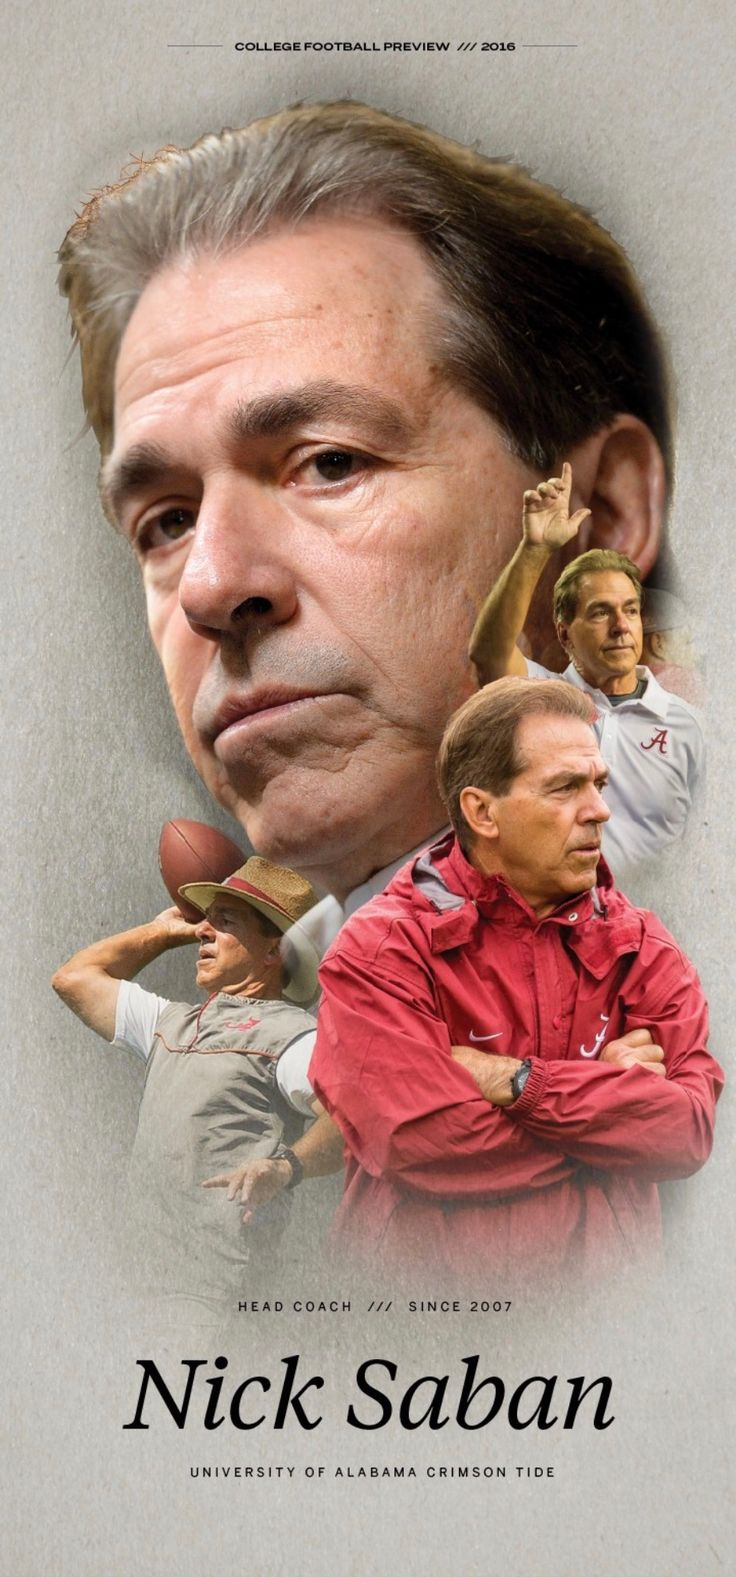 Nick Saban - Alabama head coach since 2007